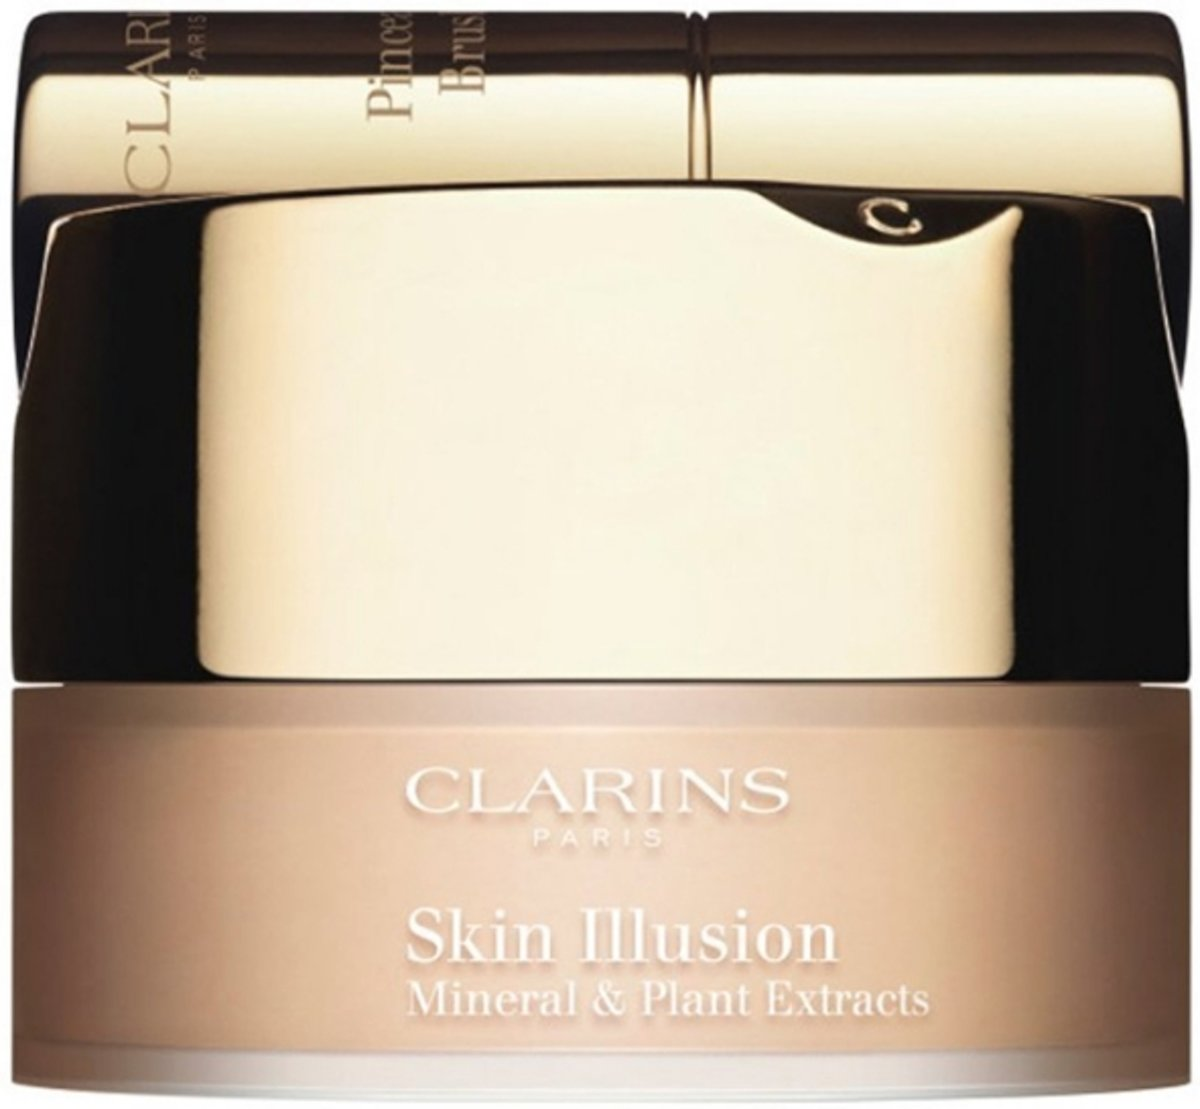 Clarins-Skin Illusion Loose Powder Foundation - nr. 114